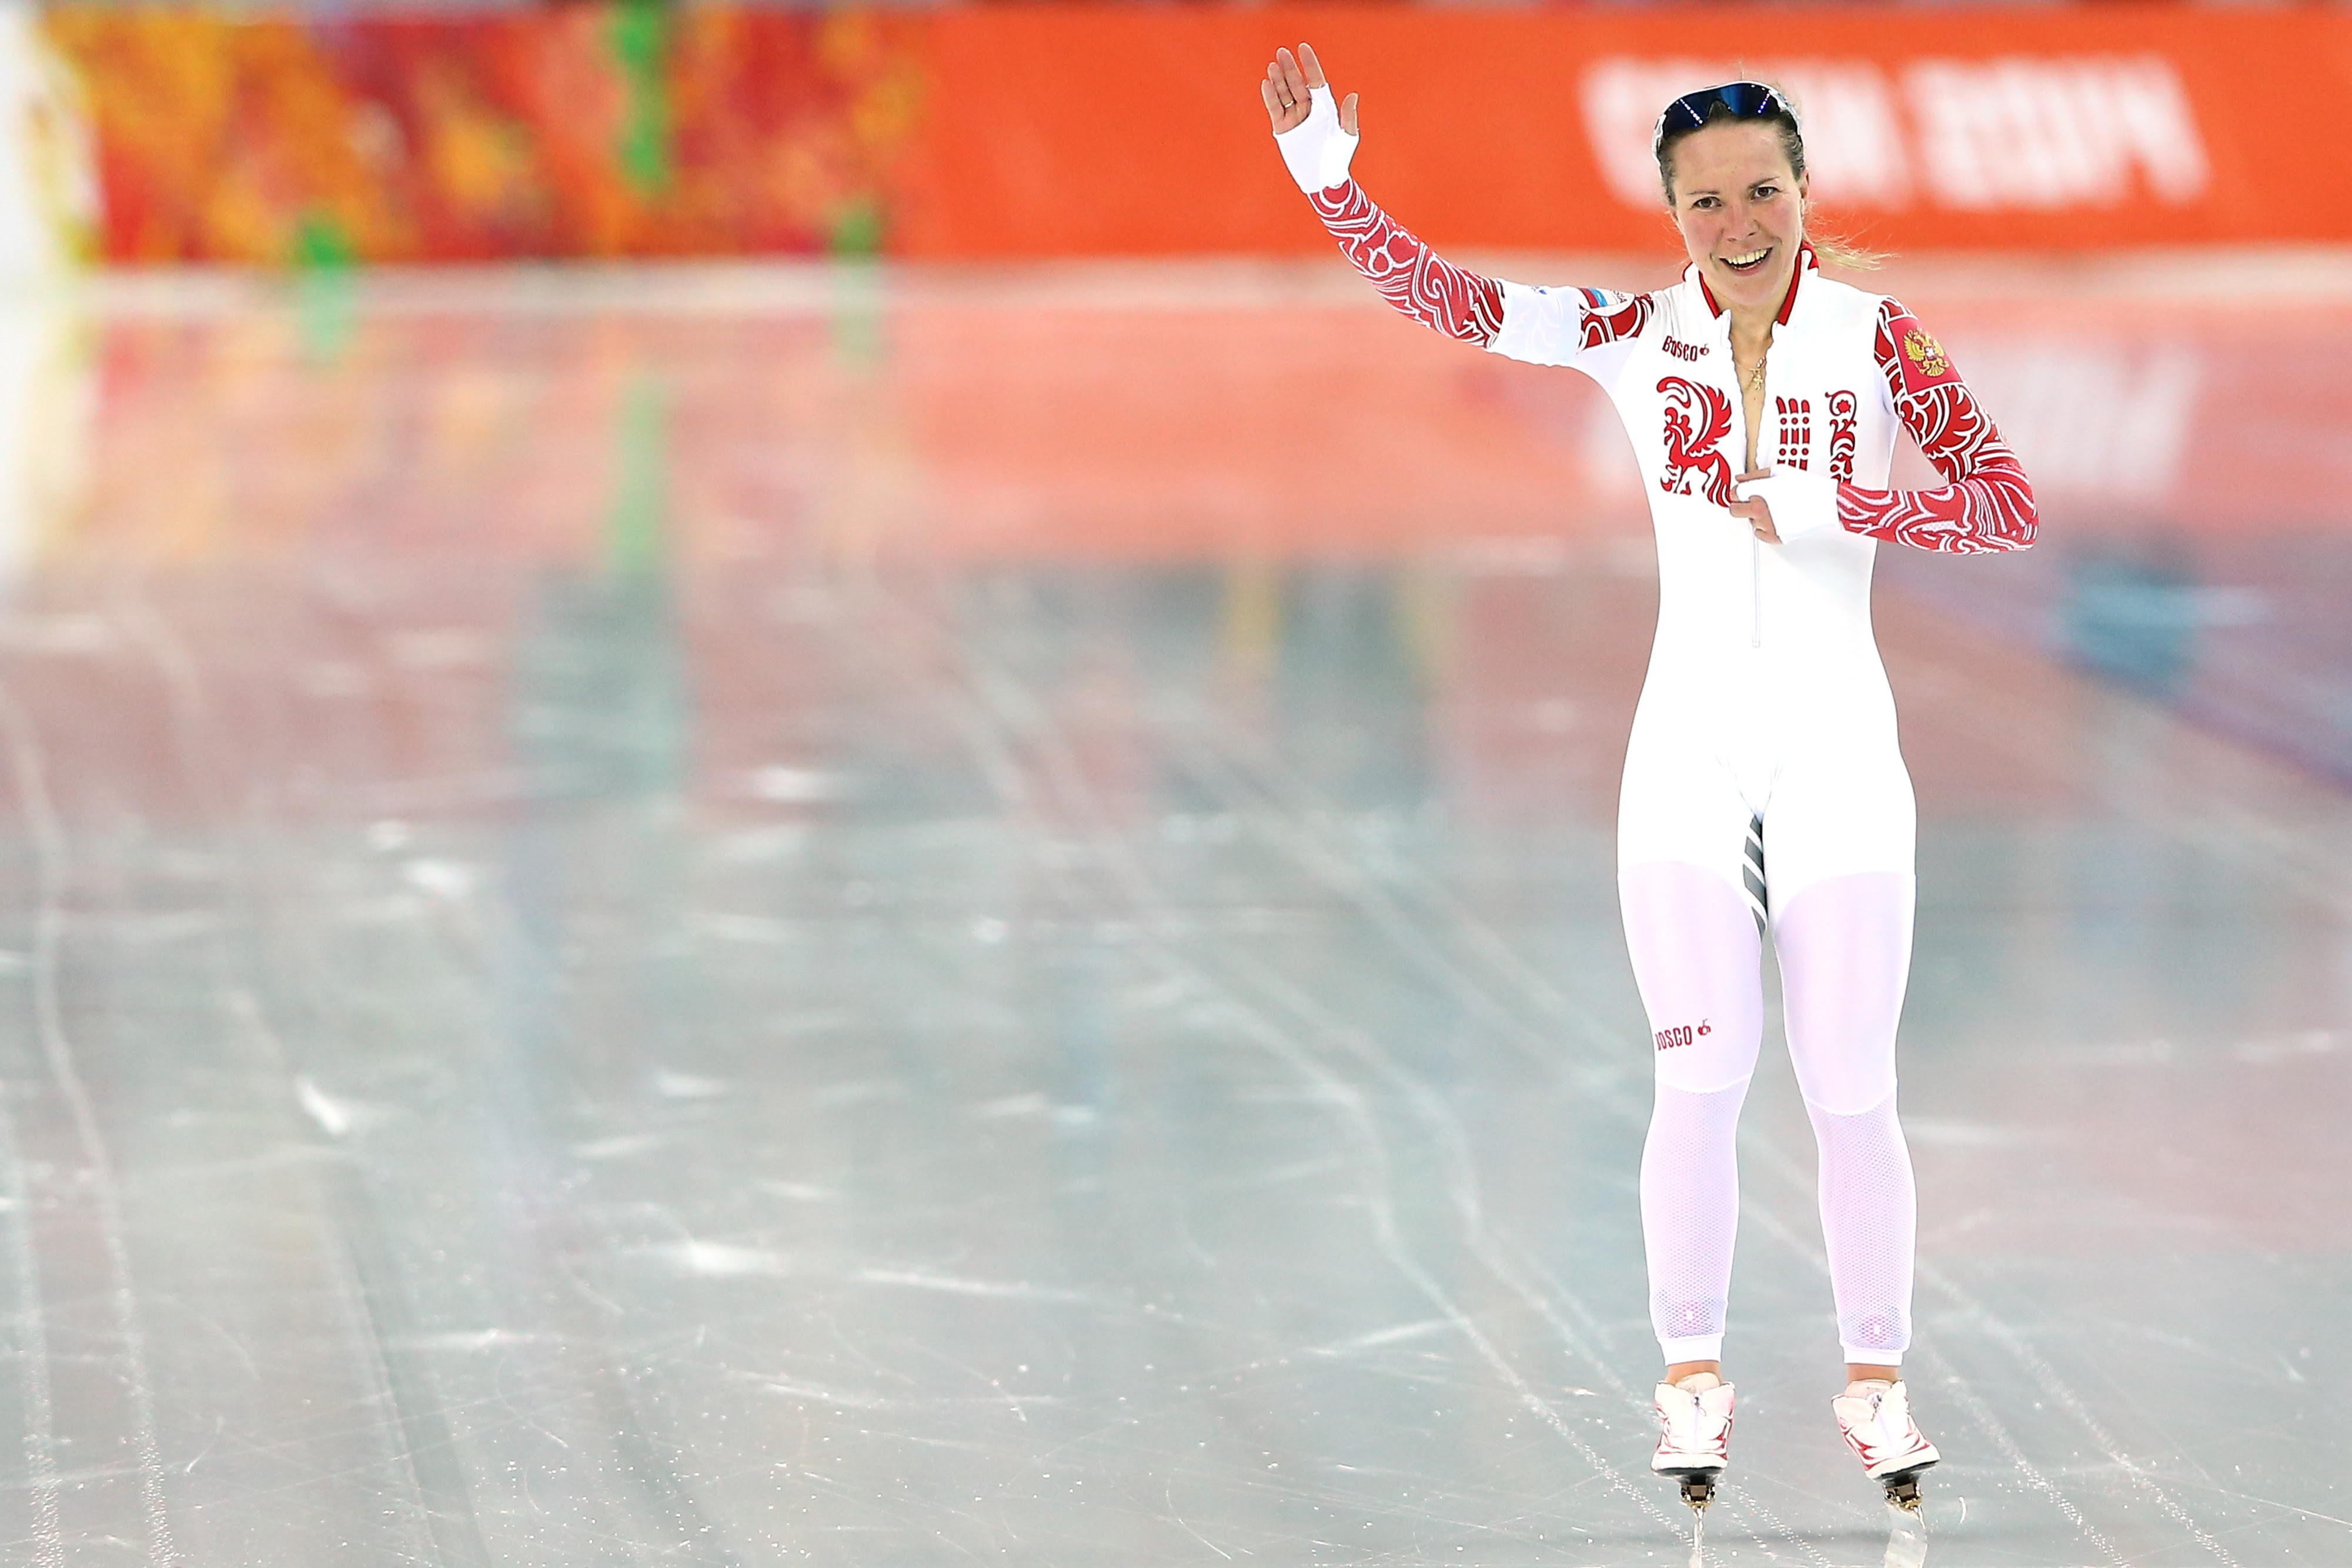 KC Boutiette returns to World Cup speed skating for first